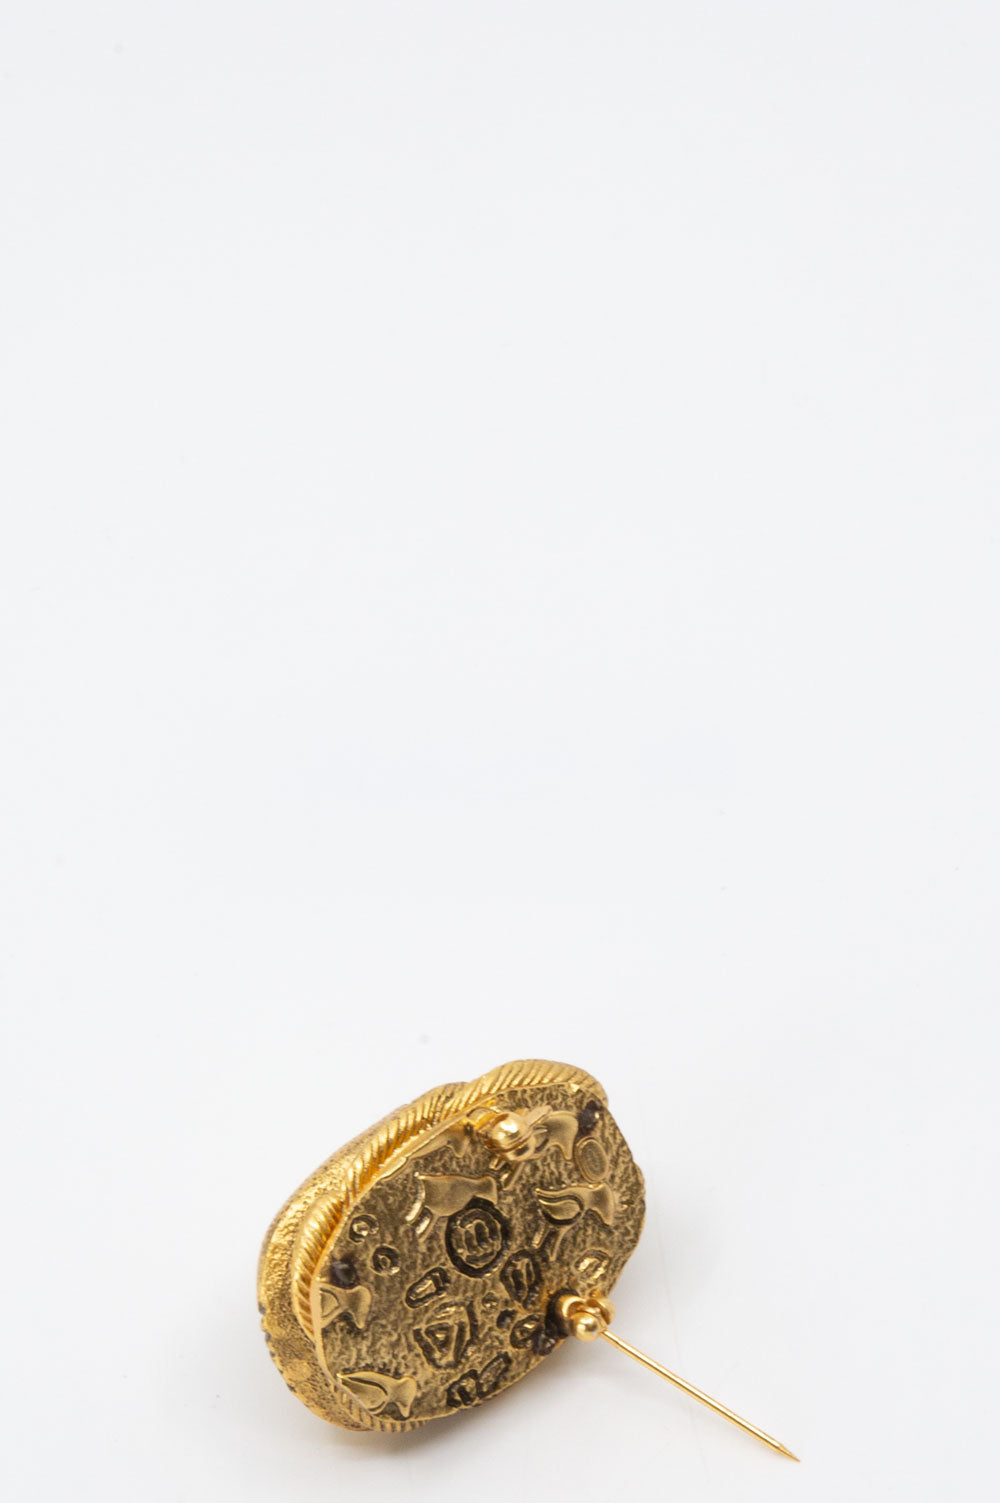 CHANEL Scarab Brooch